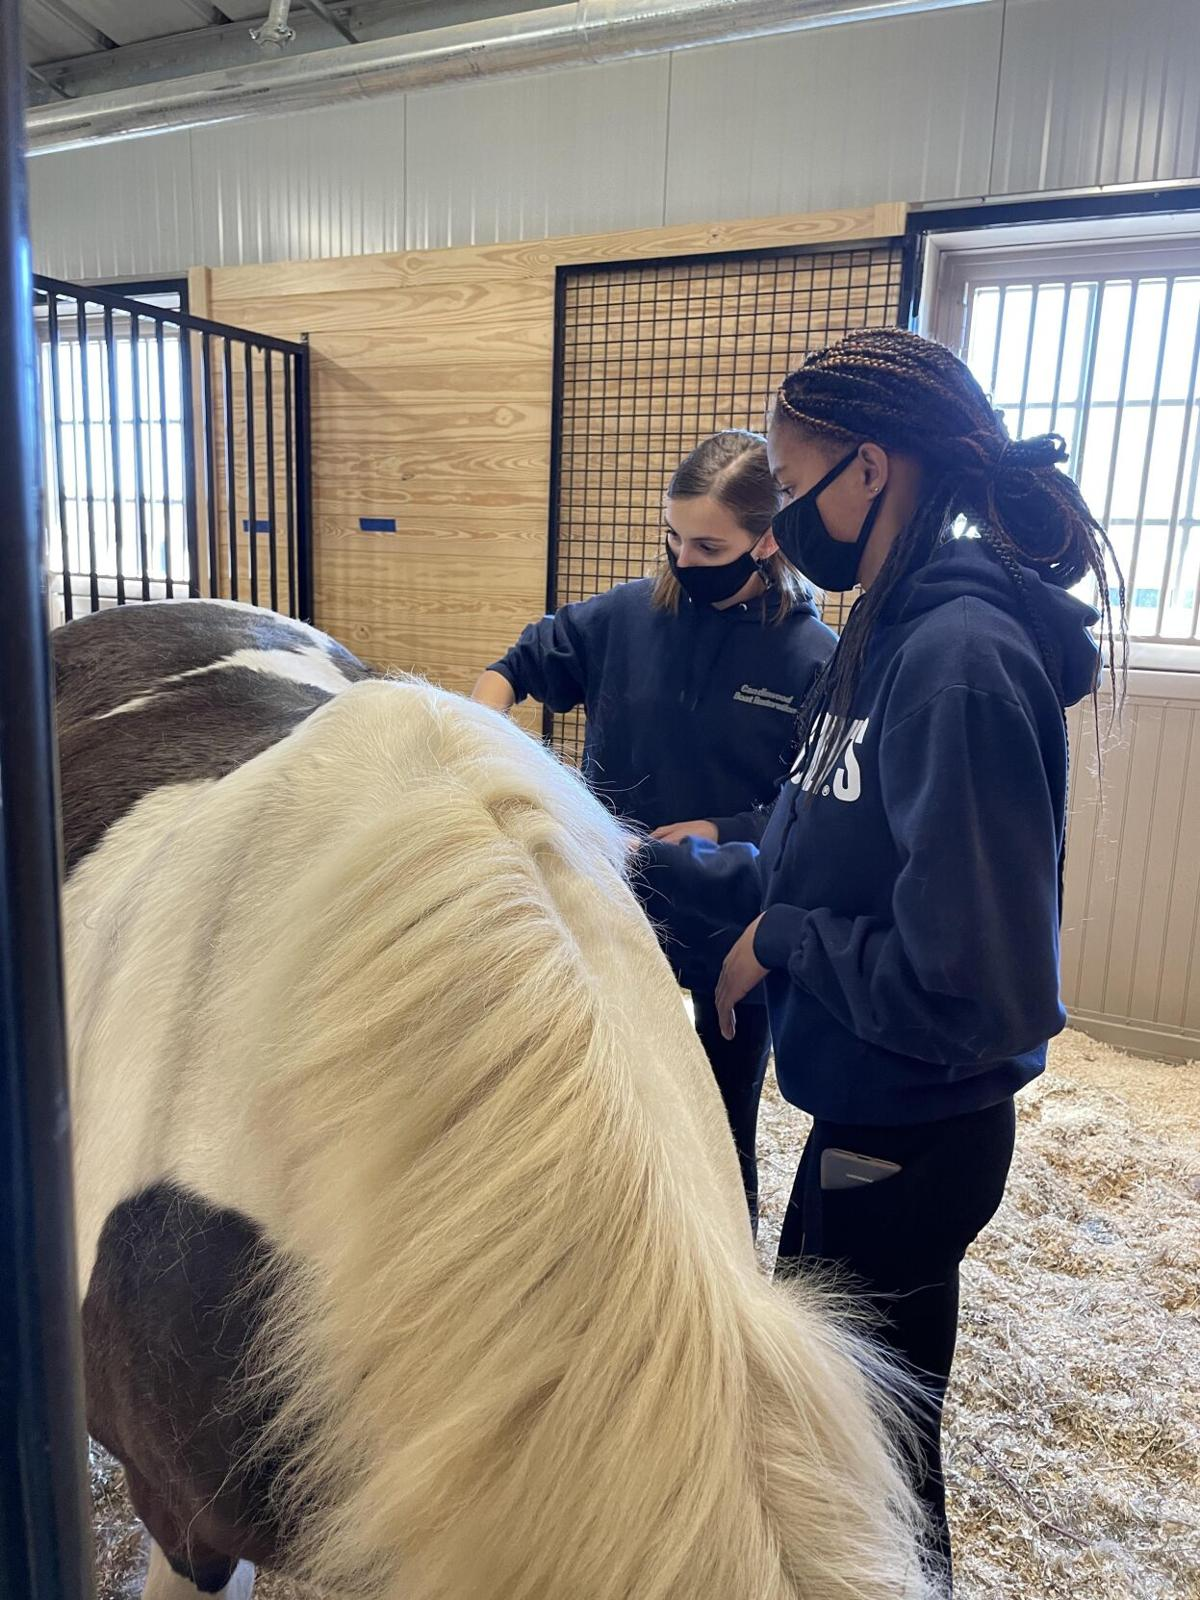 'High school with an enhancement': Shepaug Valley's regional agriscience program triples in size